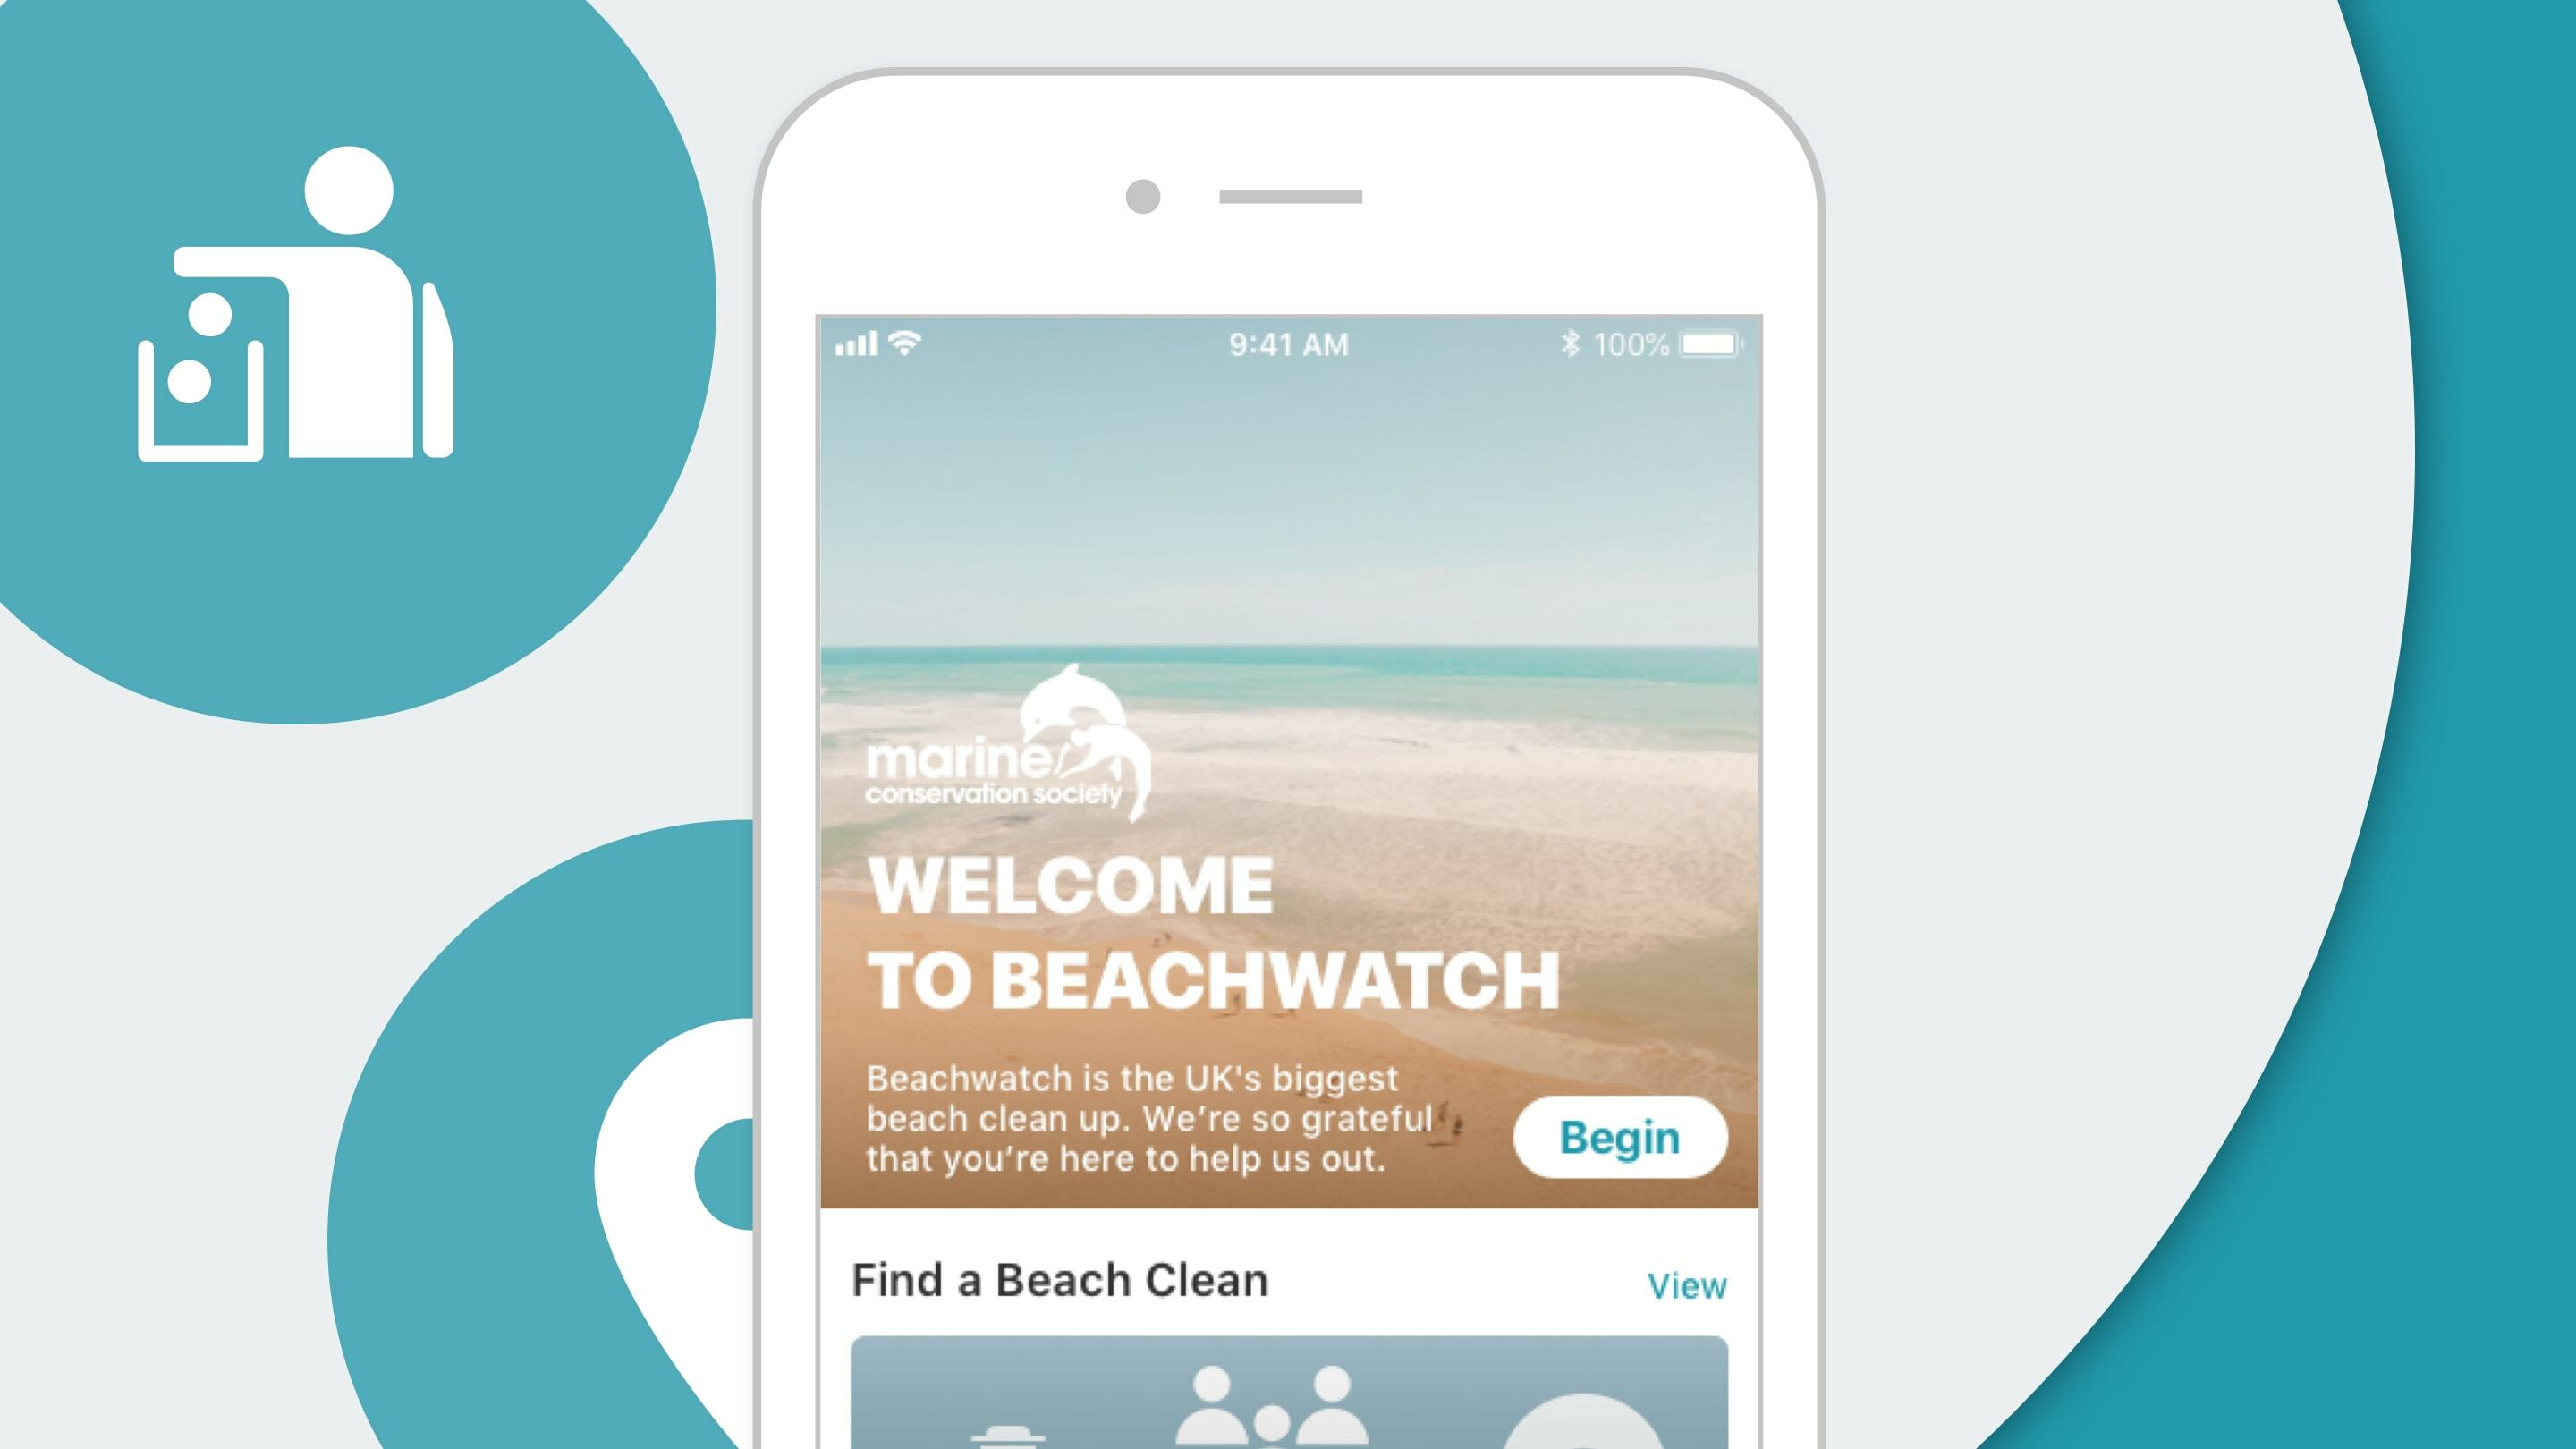 MCS beachwatch hero of the apps home screen